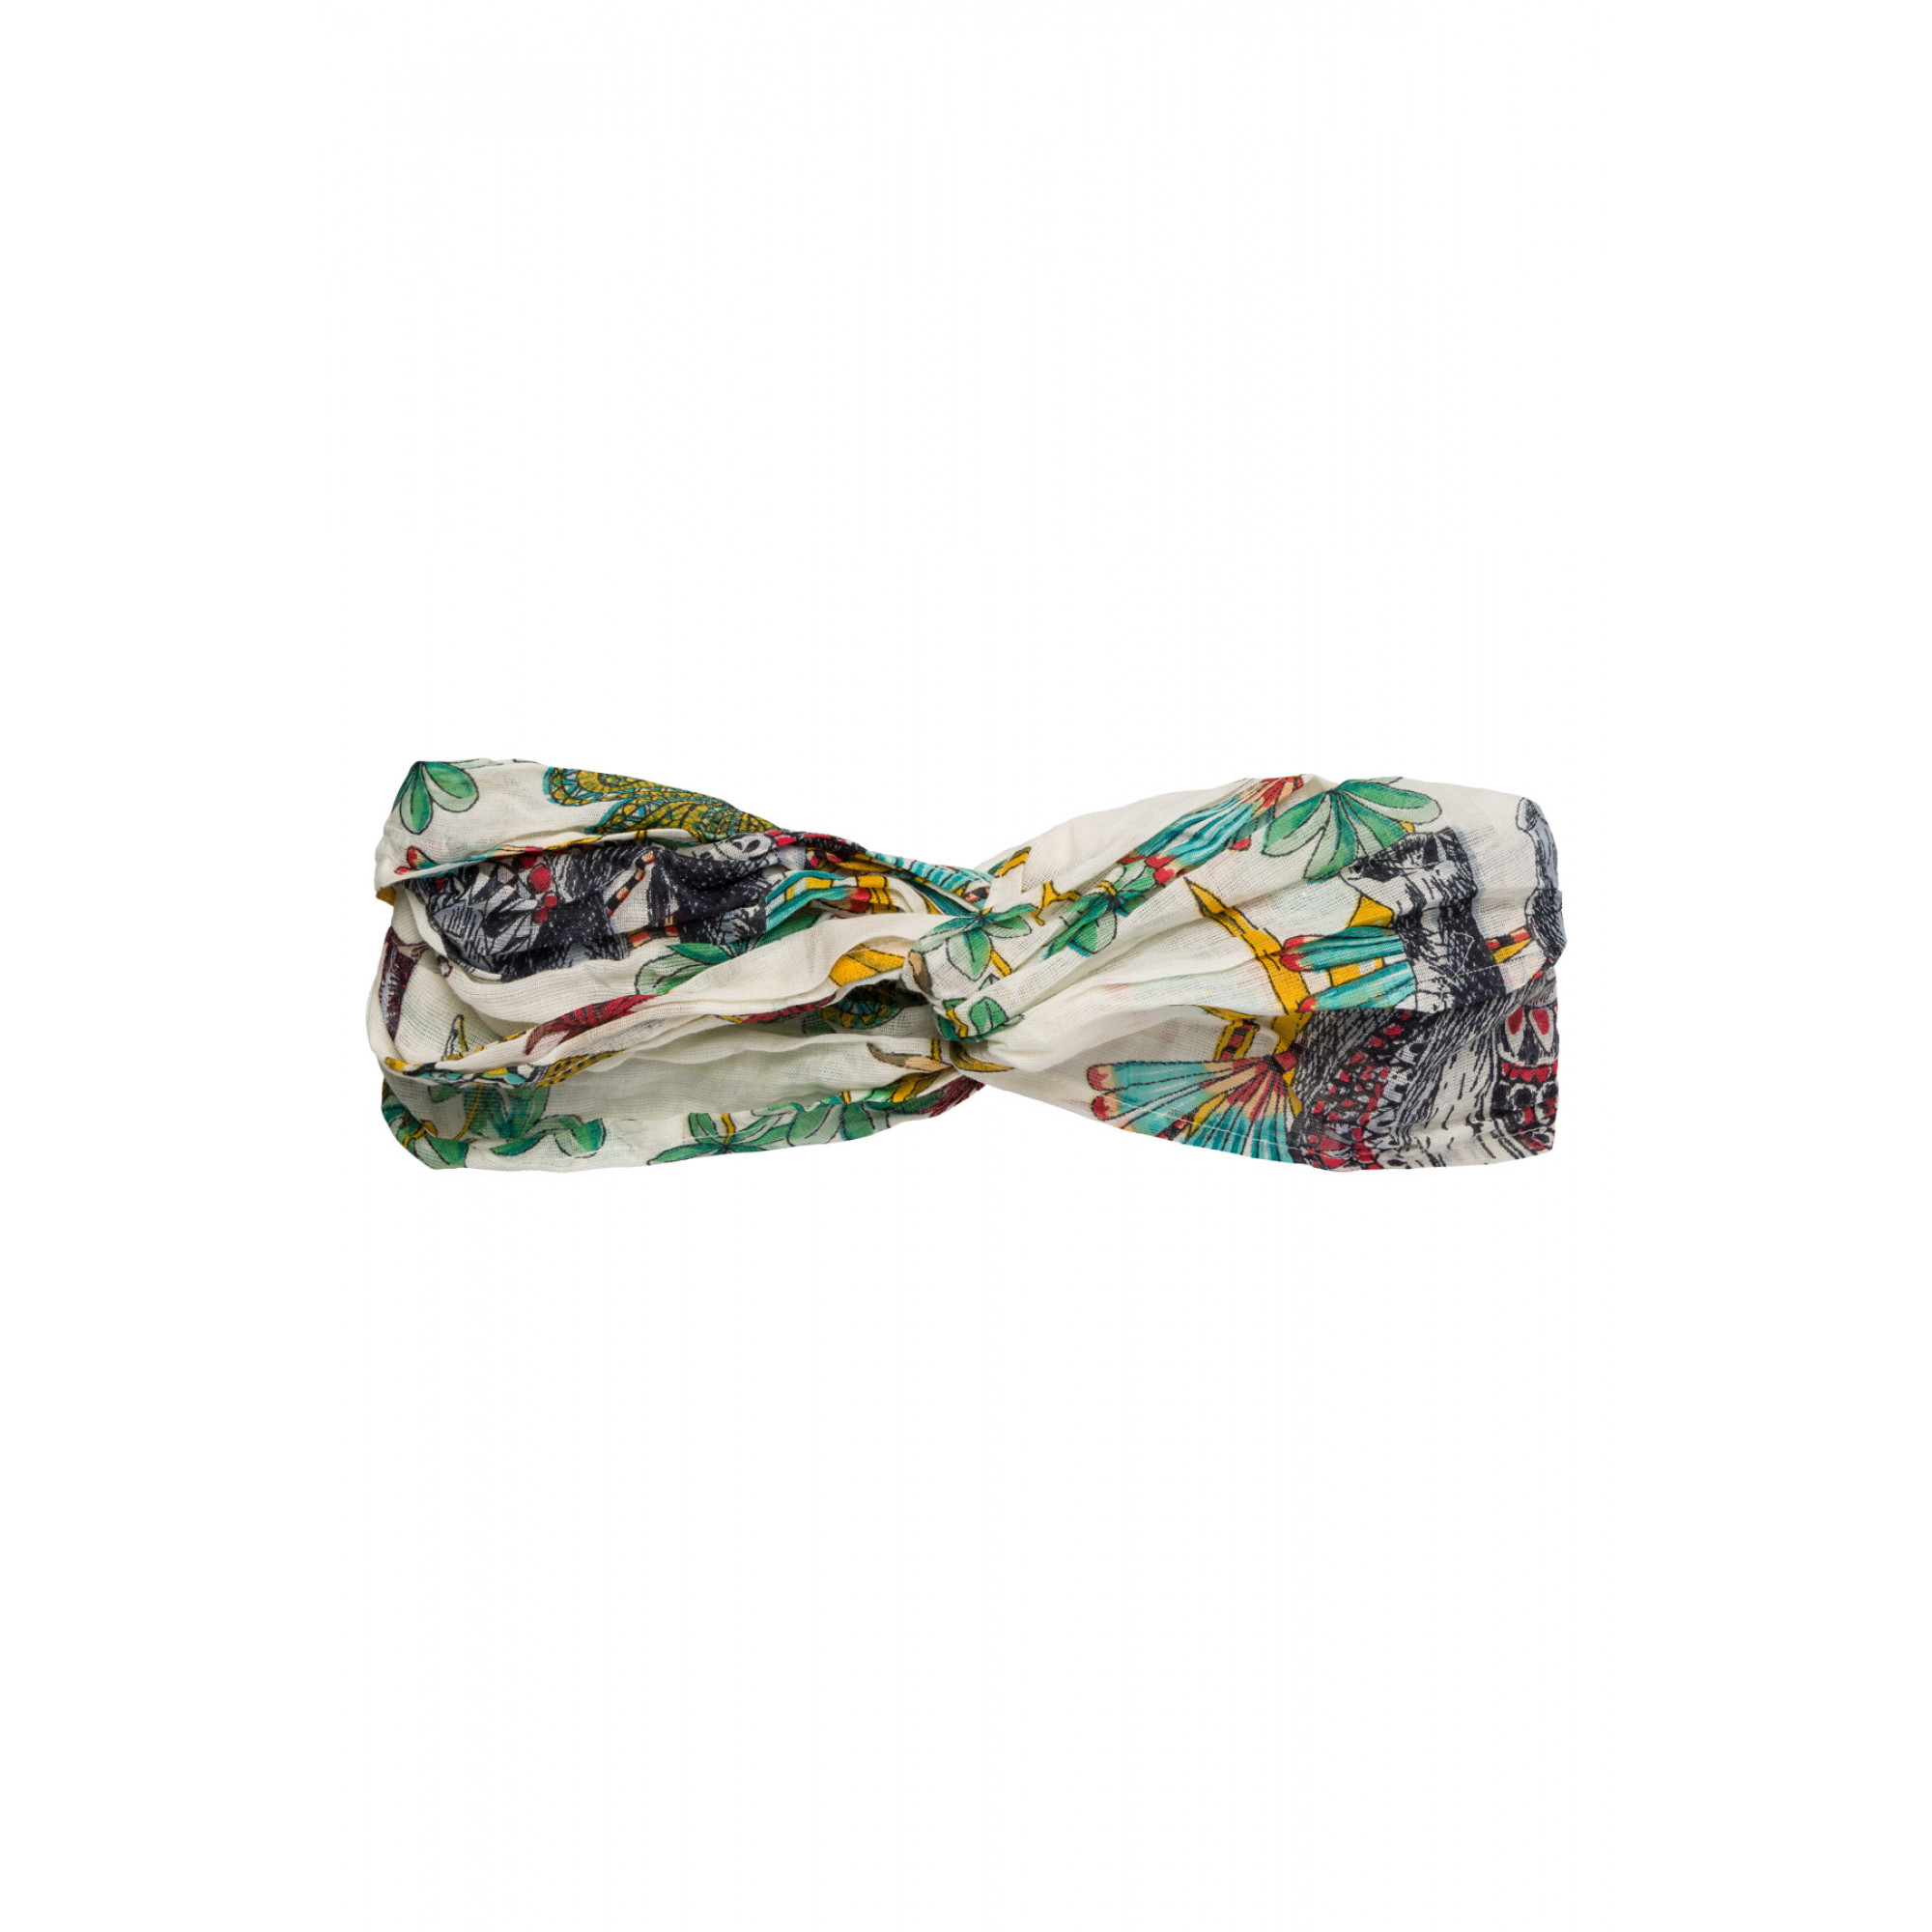 Stirnband, Jungle-Print 91059400-4035 1